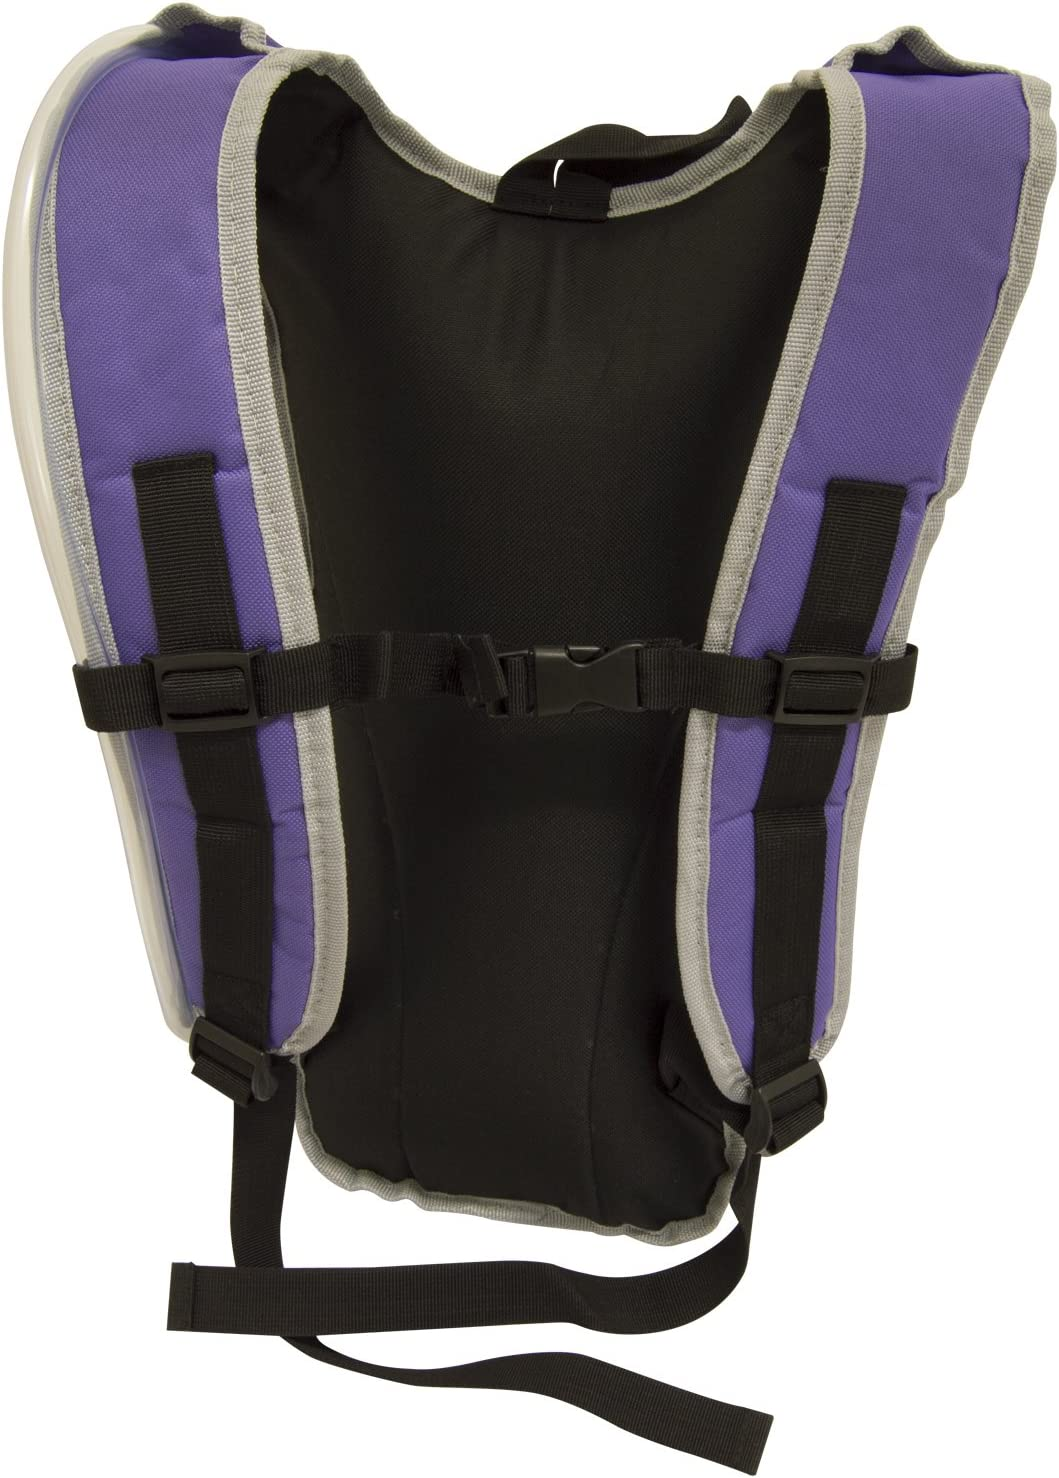 Andes 2 Litre Hydration Pack Water Rucksack//Backpack Cycling Bladder Bag